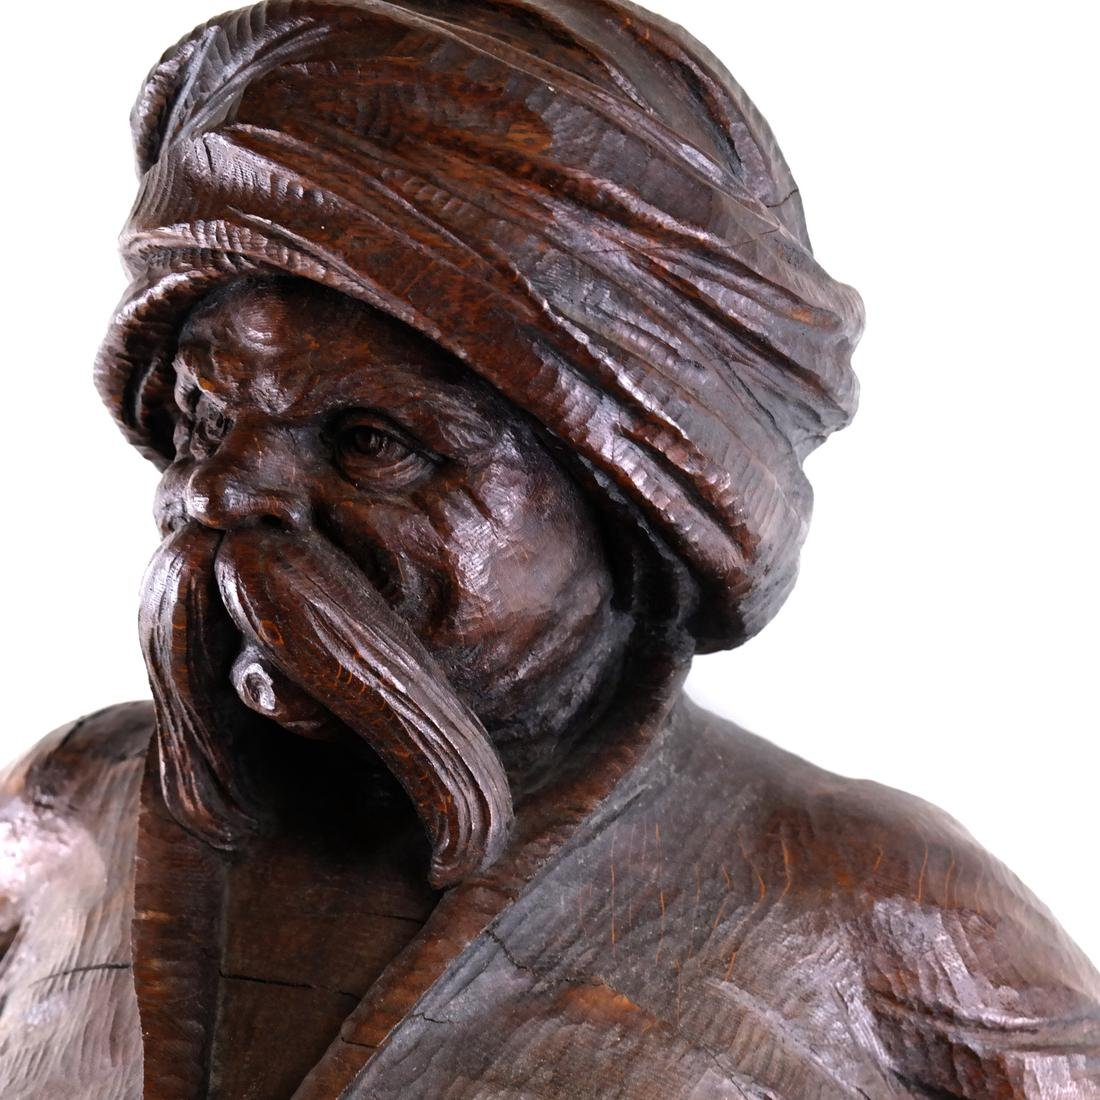 19th Century Wood Tobacconist Sculpture - 9